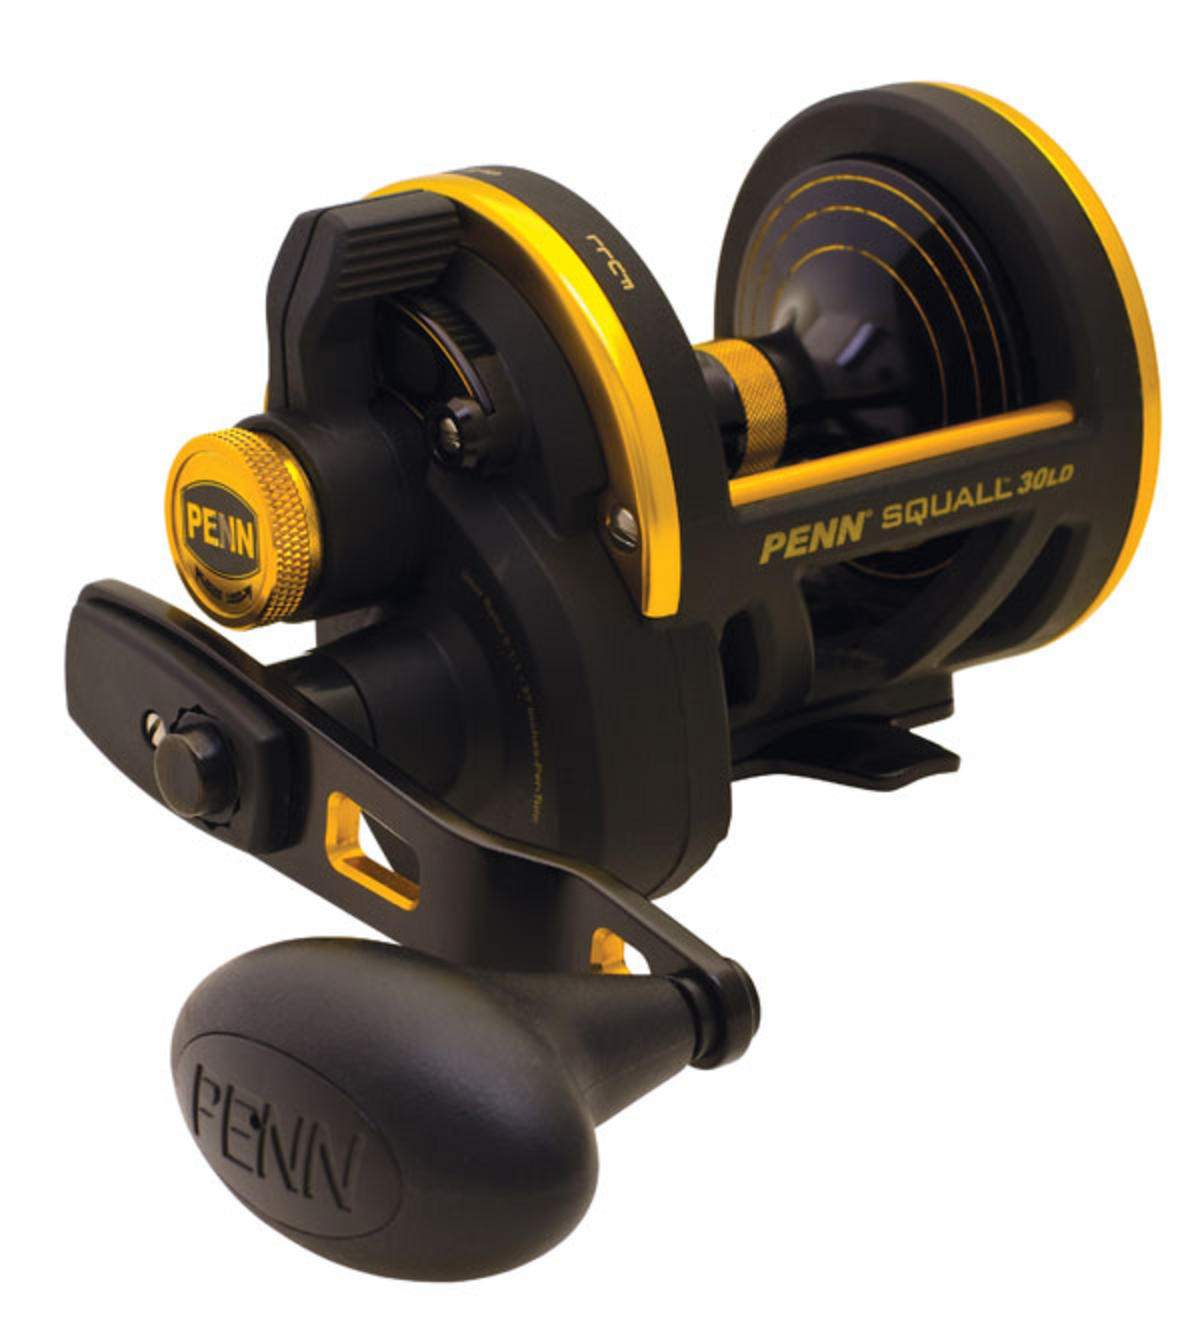 PENN SQUALL 40 LEVER DRAG MULTIPLIER SEA FISHING REEL SQL40LD 1206094